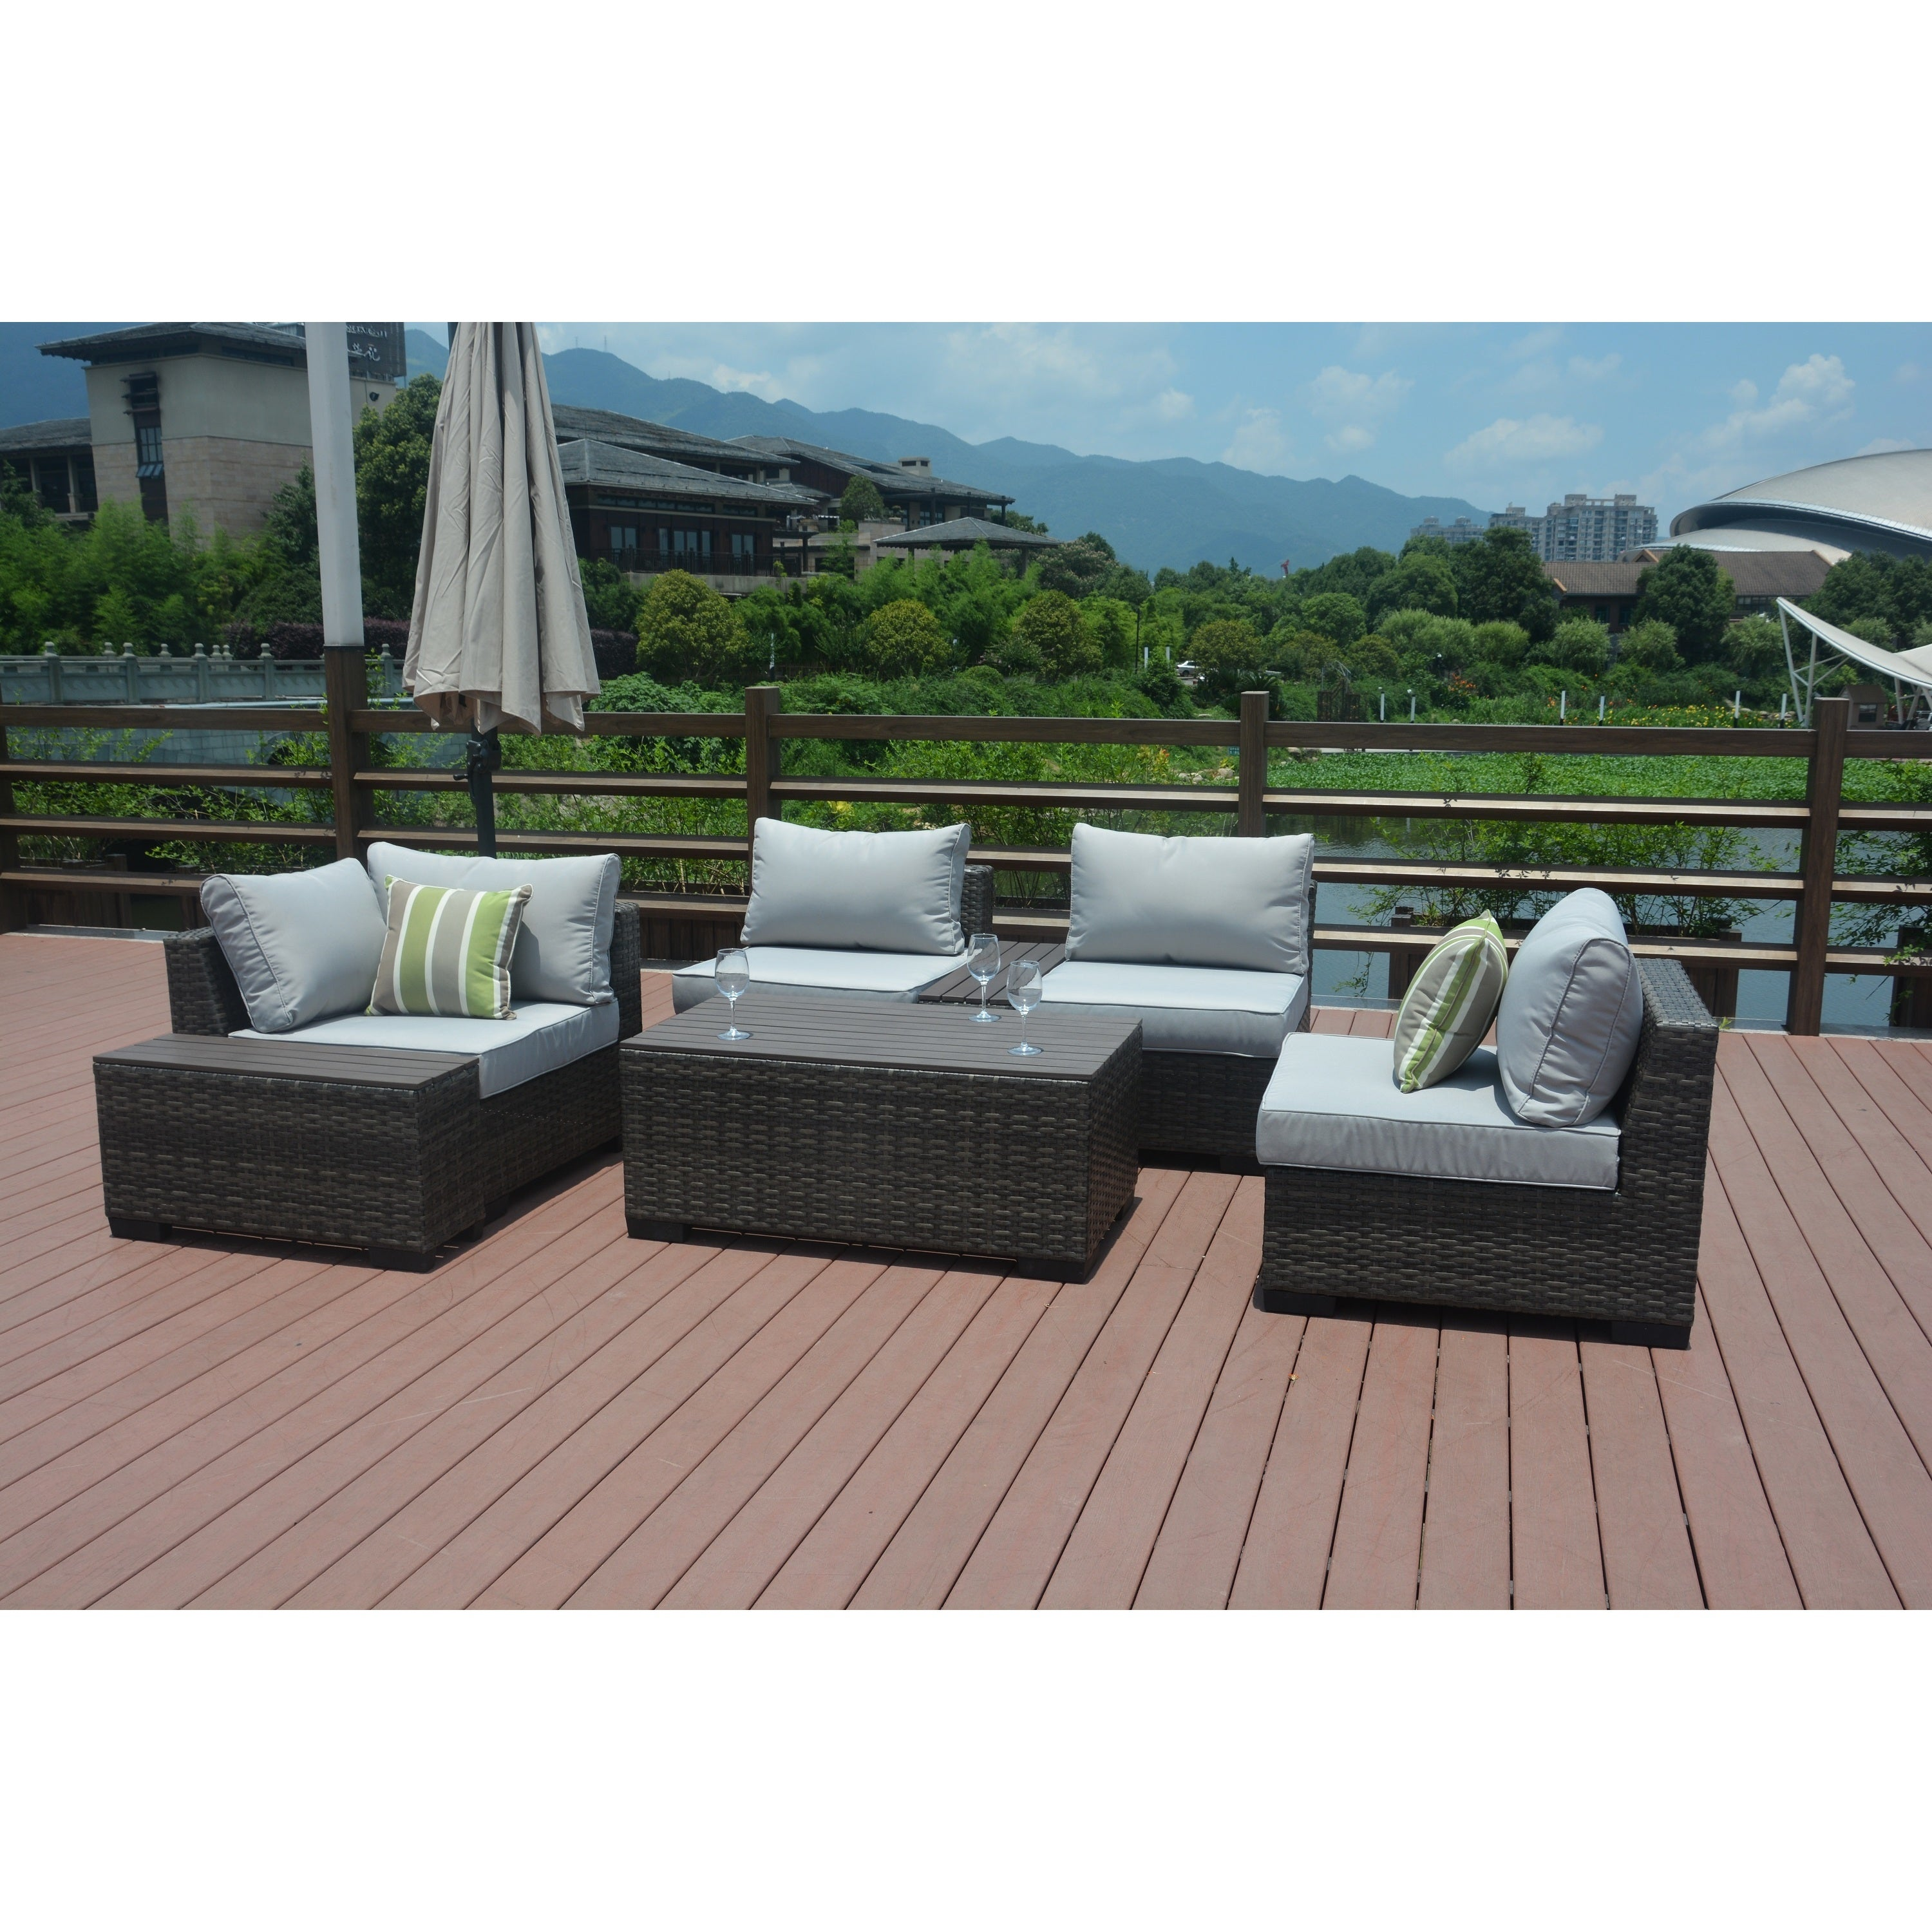 stand outdoor furniture base plastic patio product ipree umbrella beach garden parasol df